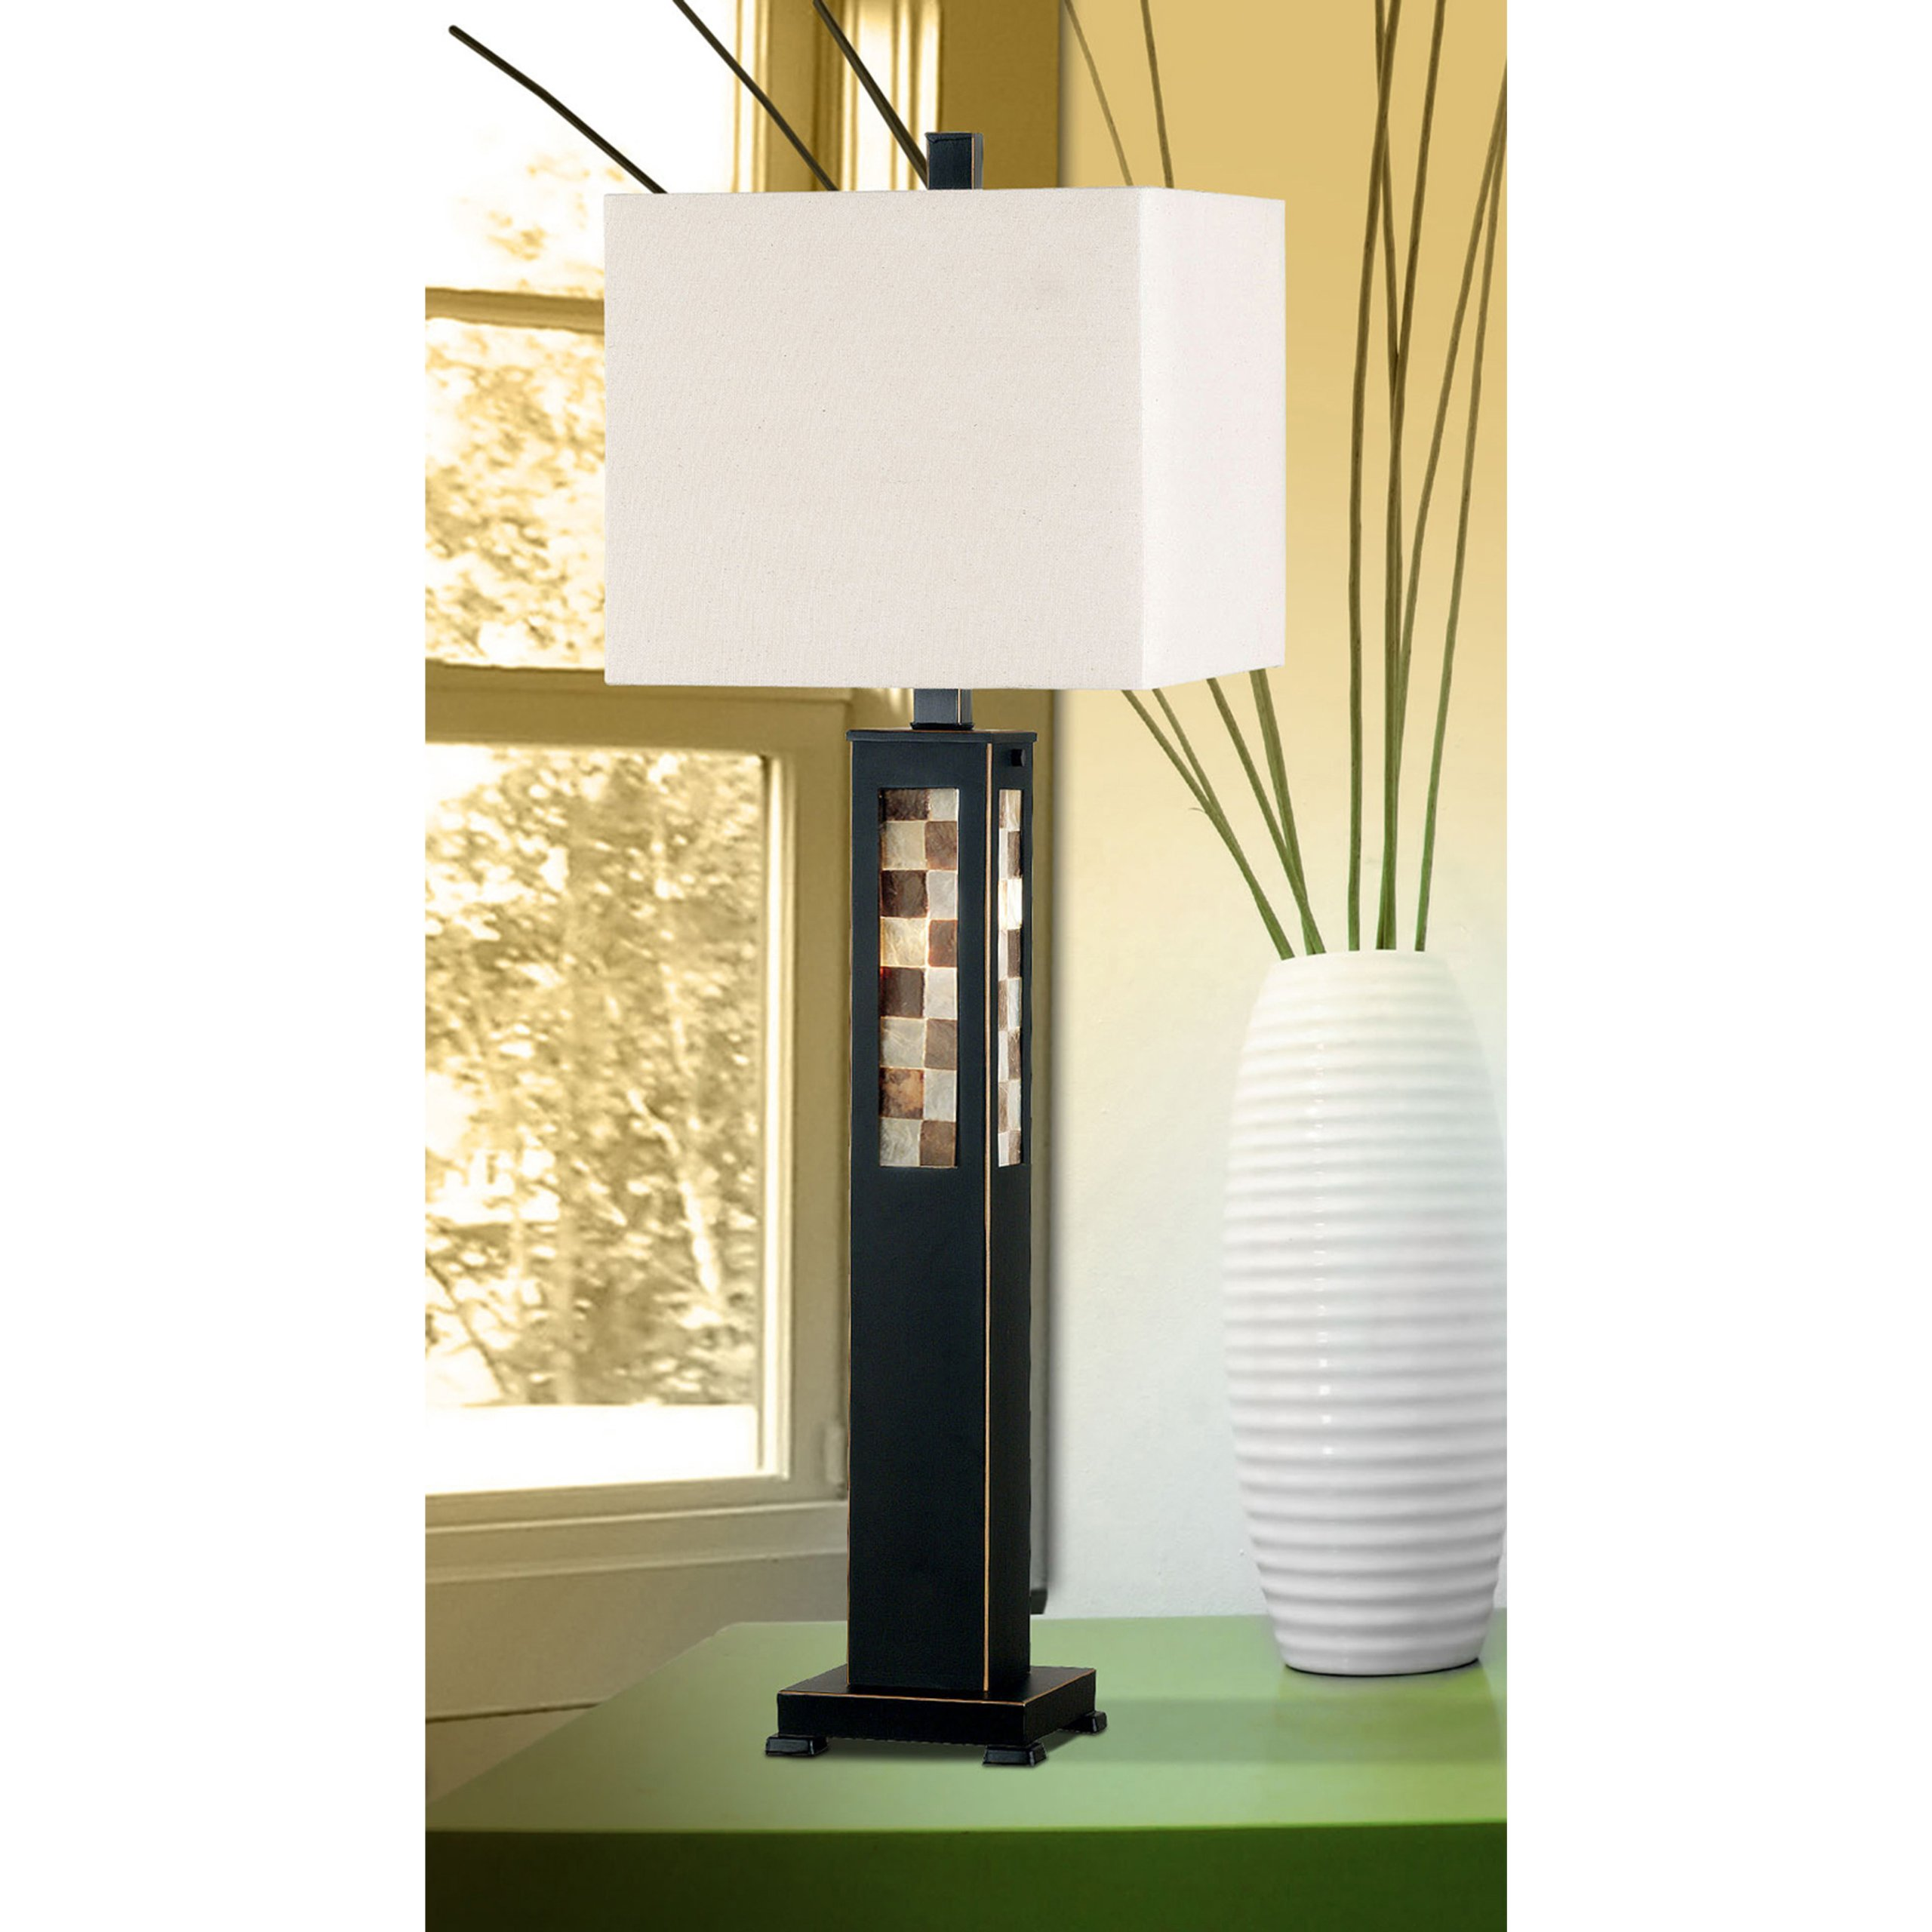 Kenroy Homes Windowpane Table Lamp with Oil Rubbed Bronze Finish and a Crème Square Shade